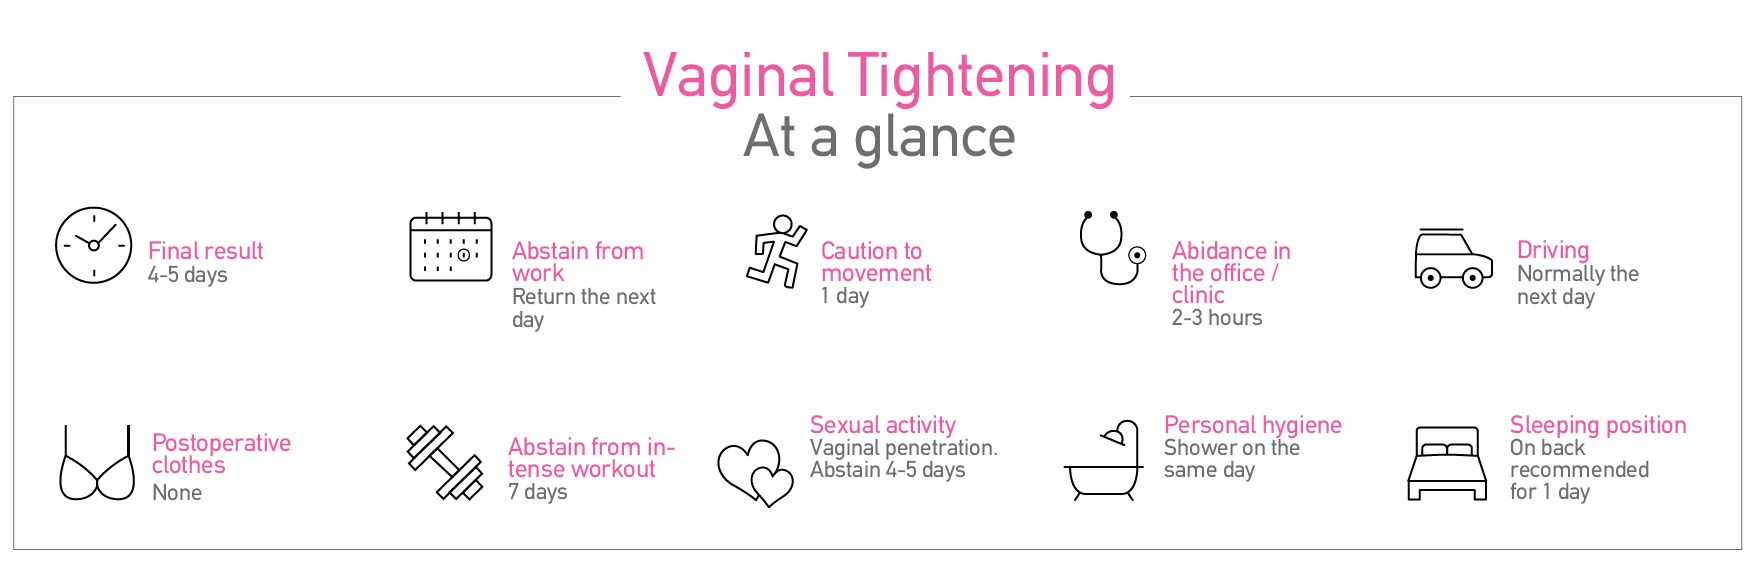 VAGINAL TIGHTENING